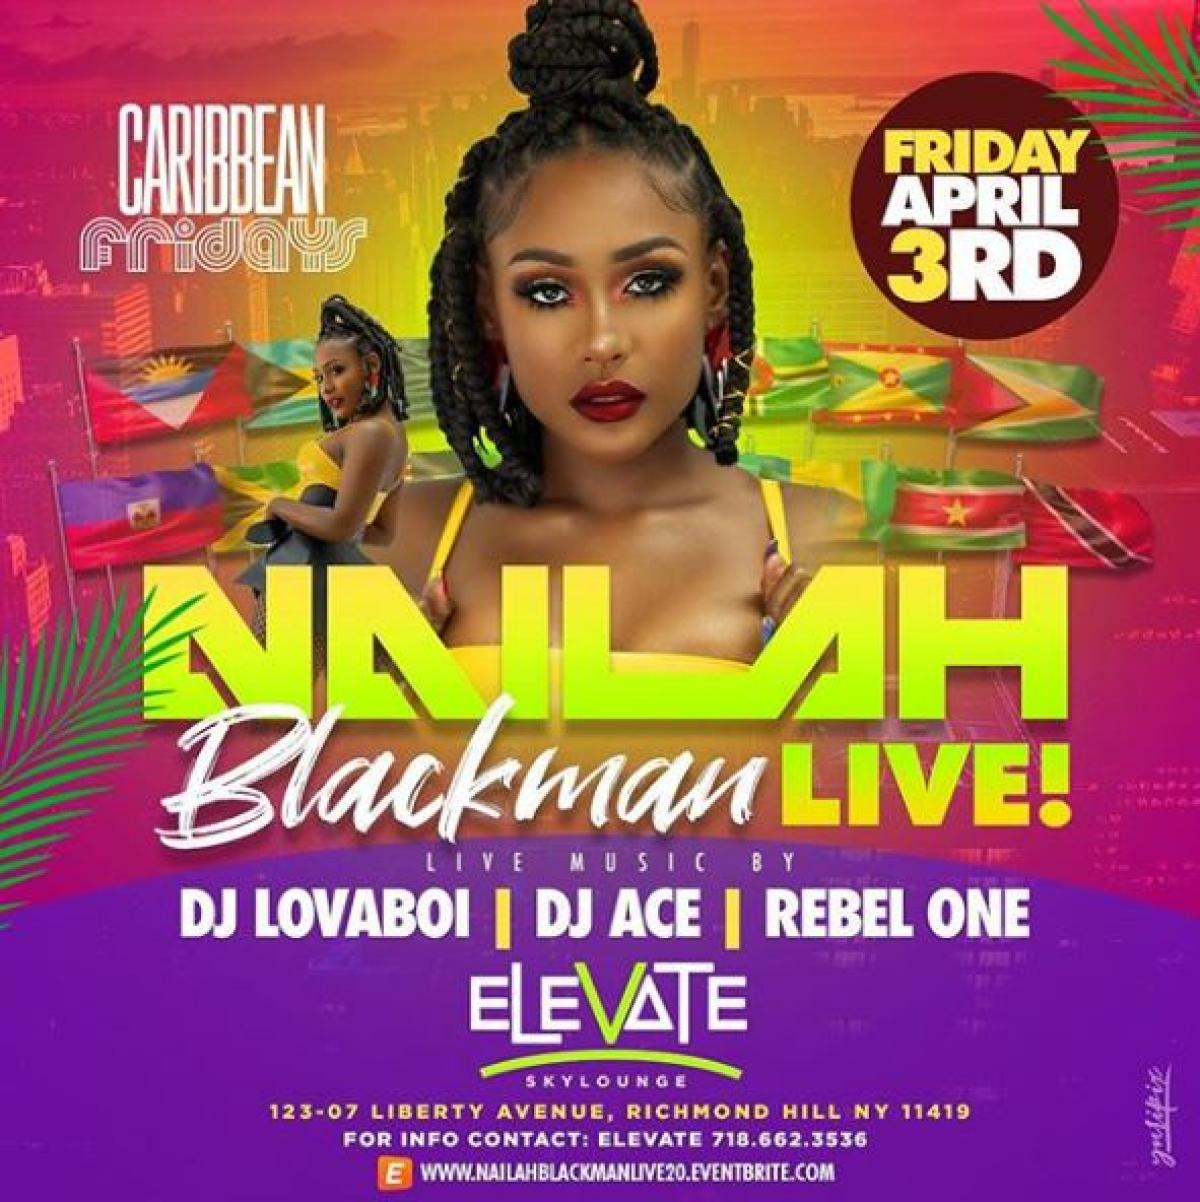 Nailah Blackman Live flyer or graphic.